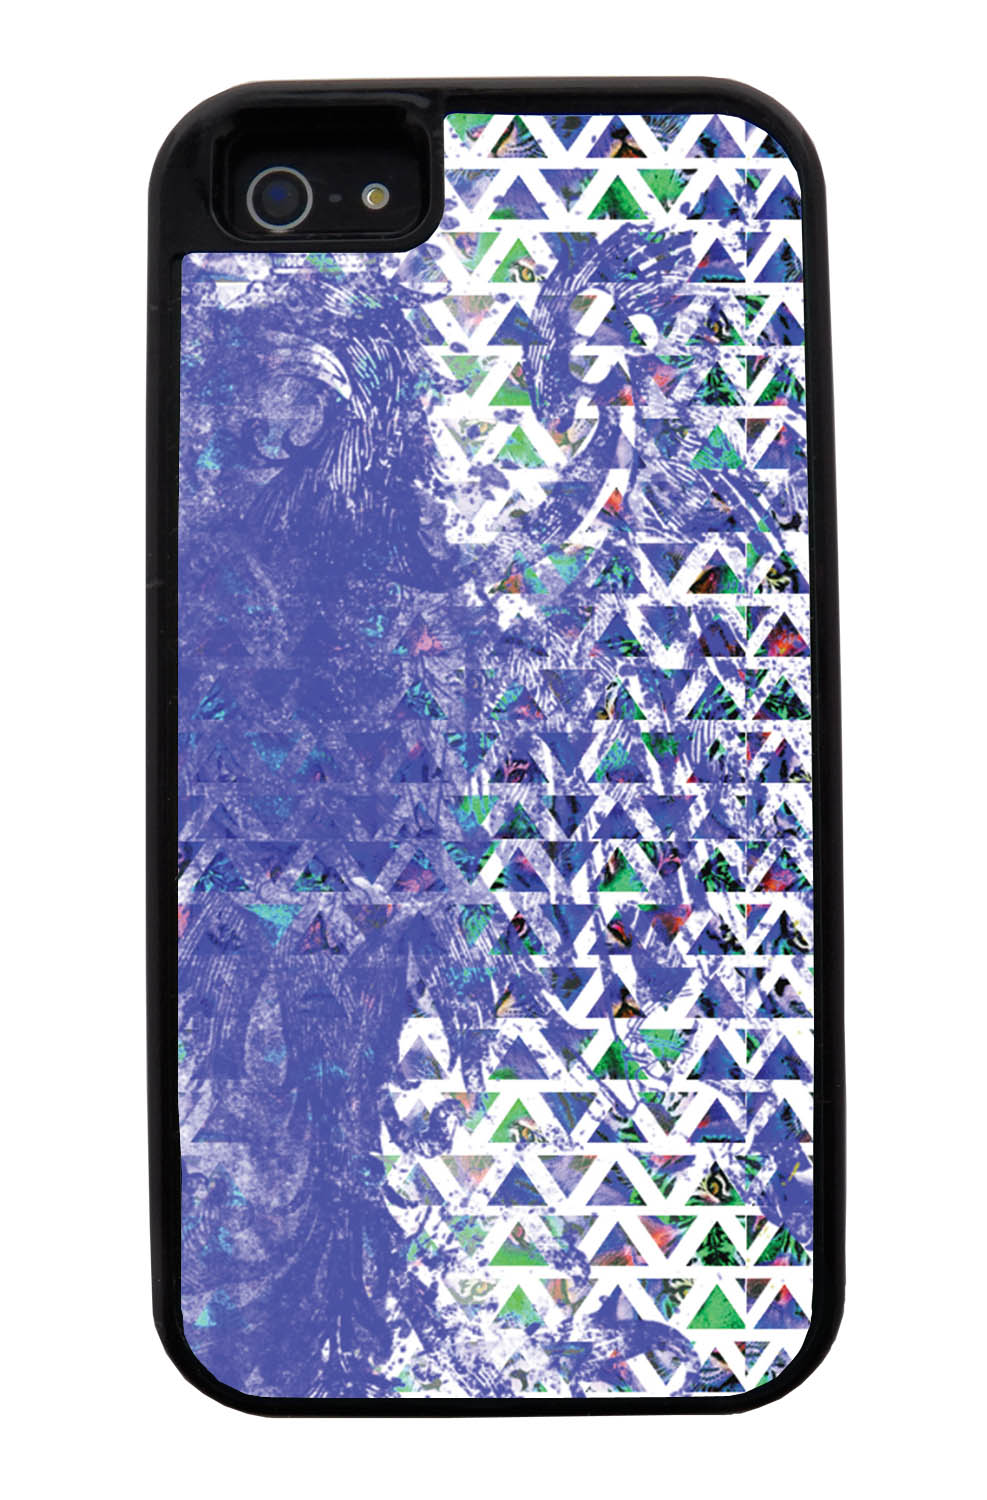 Apple iPhone 5 / 5S Aztec Case - Purple Smear Paint with Green and White - Paint Splatter Overlay - Black Tough Hybrid Case